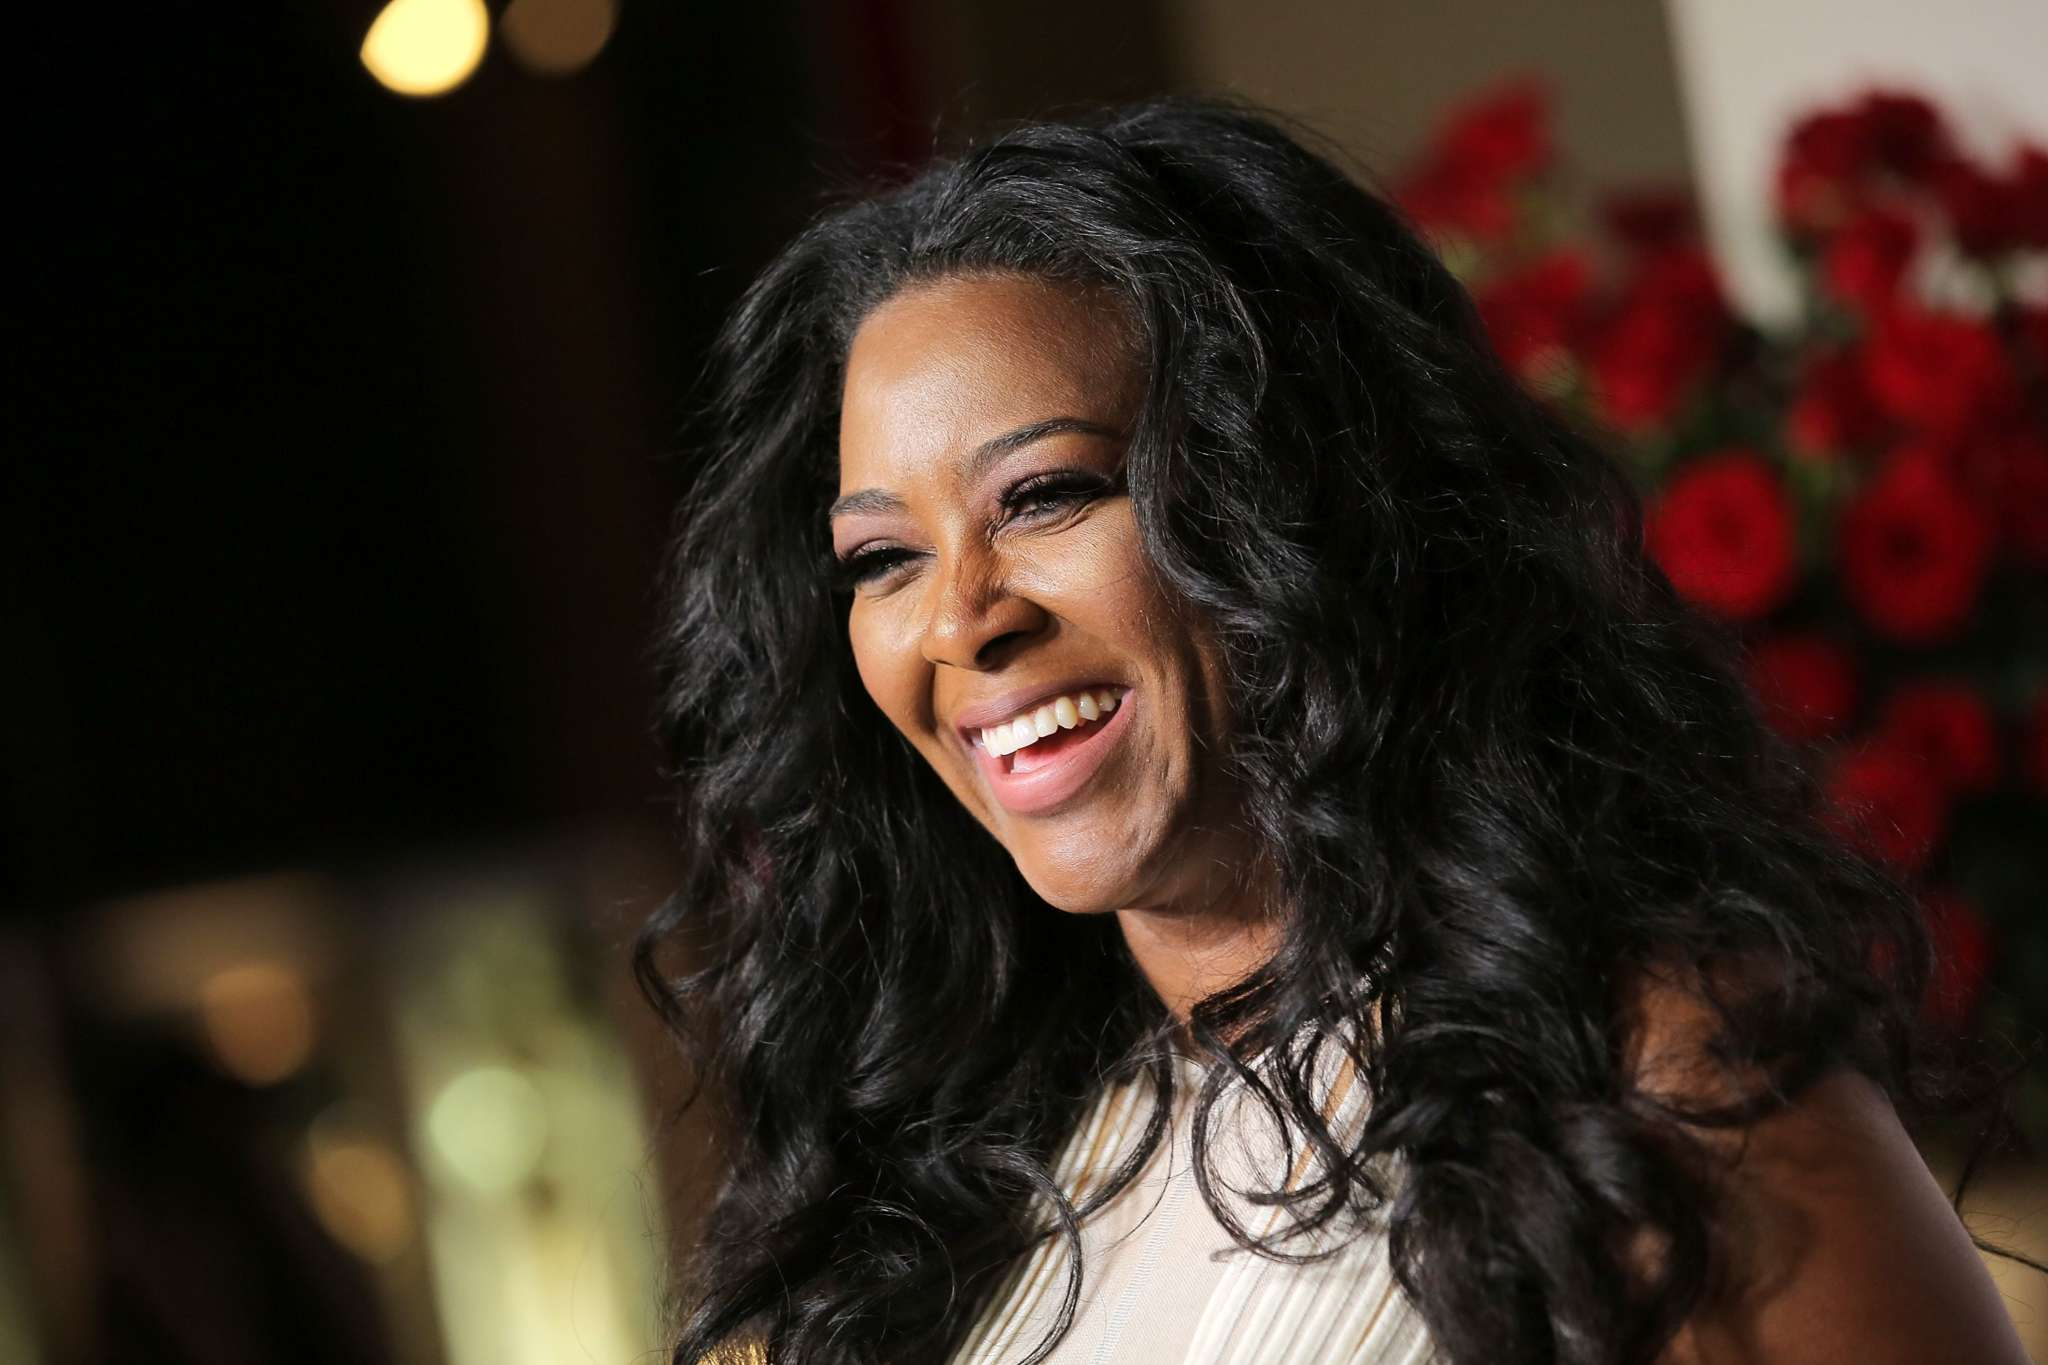 Kenya Moore Unveils Her Comeback On RHOA - See The Photo And Her Message